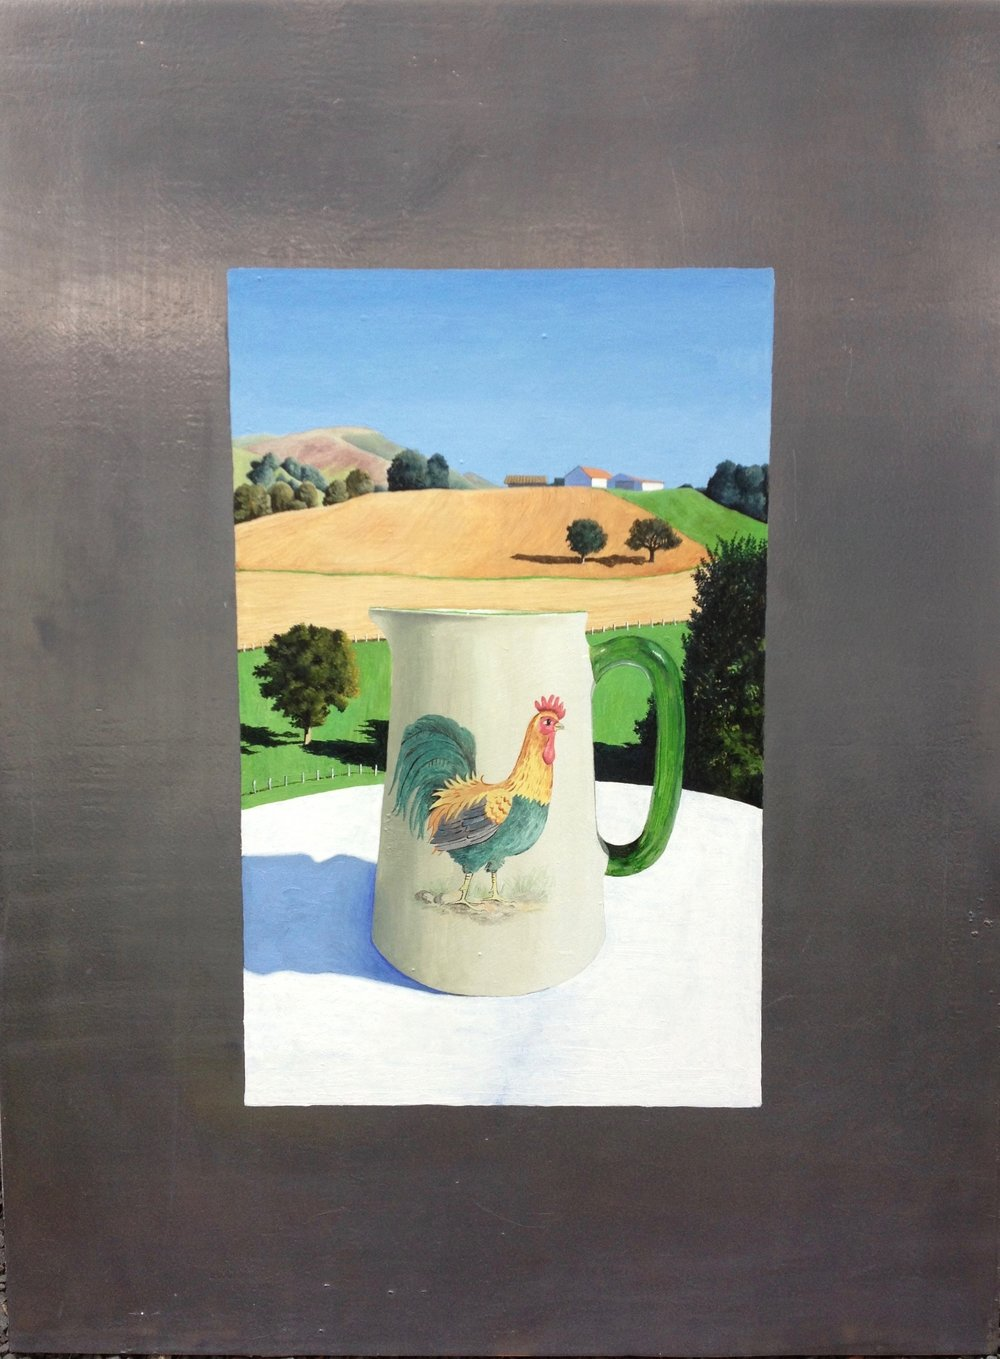 Rooster on the Farm Series - I started this series when I found a little English pitcher with a rooster on it. Making a realistic representation of a stylized image interested me. The context of a particular image interests me a lot also.Pitcher on the Farm, 29 x 20.